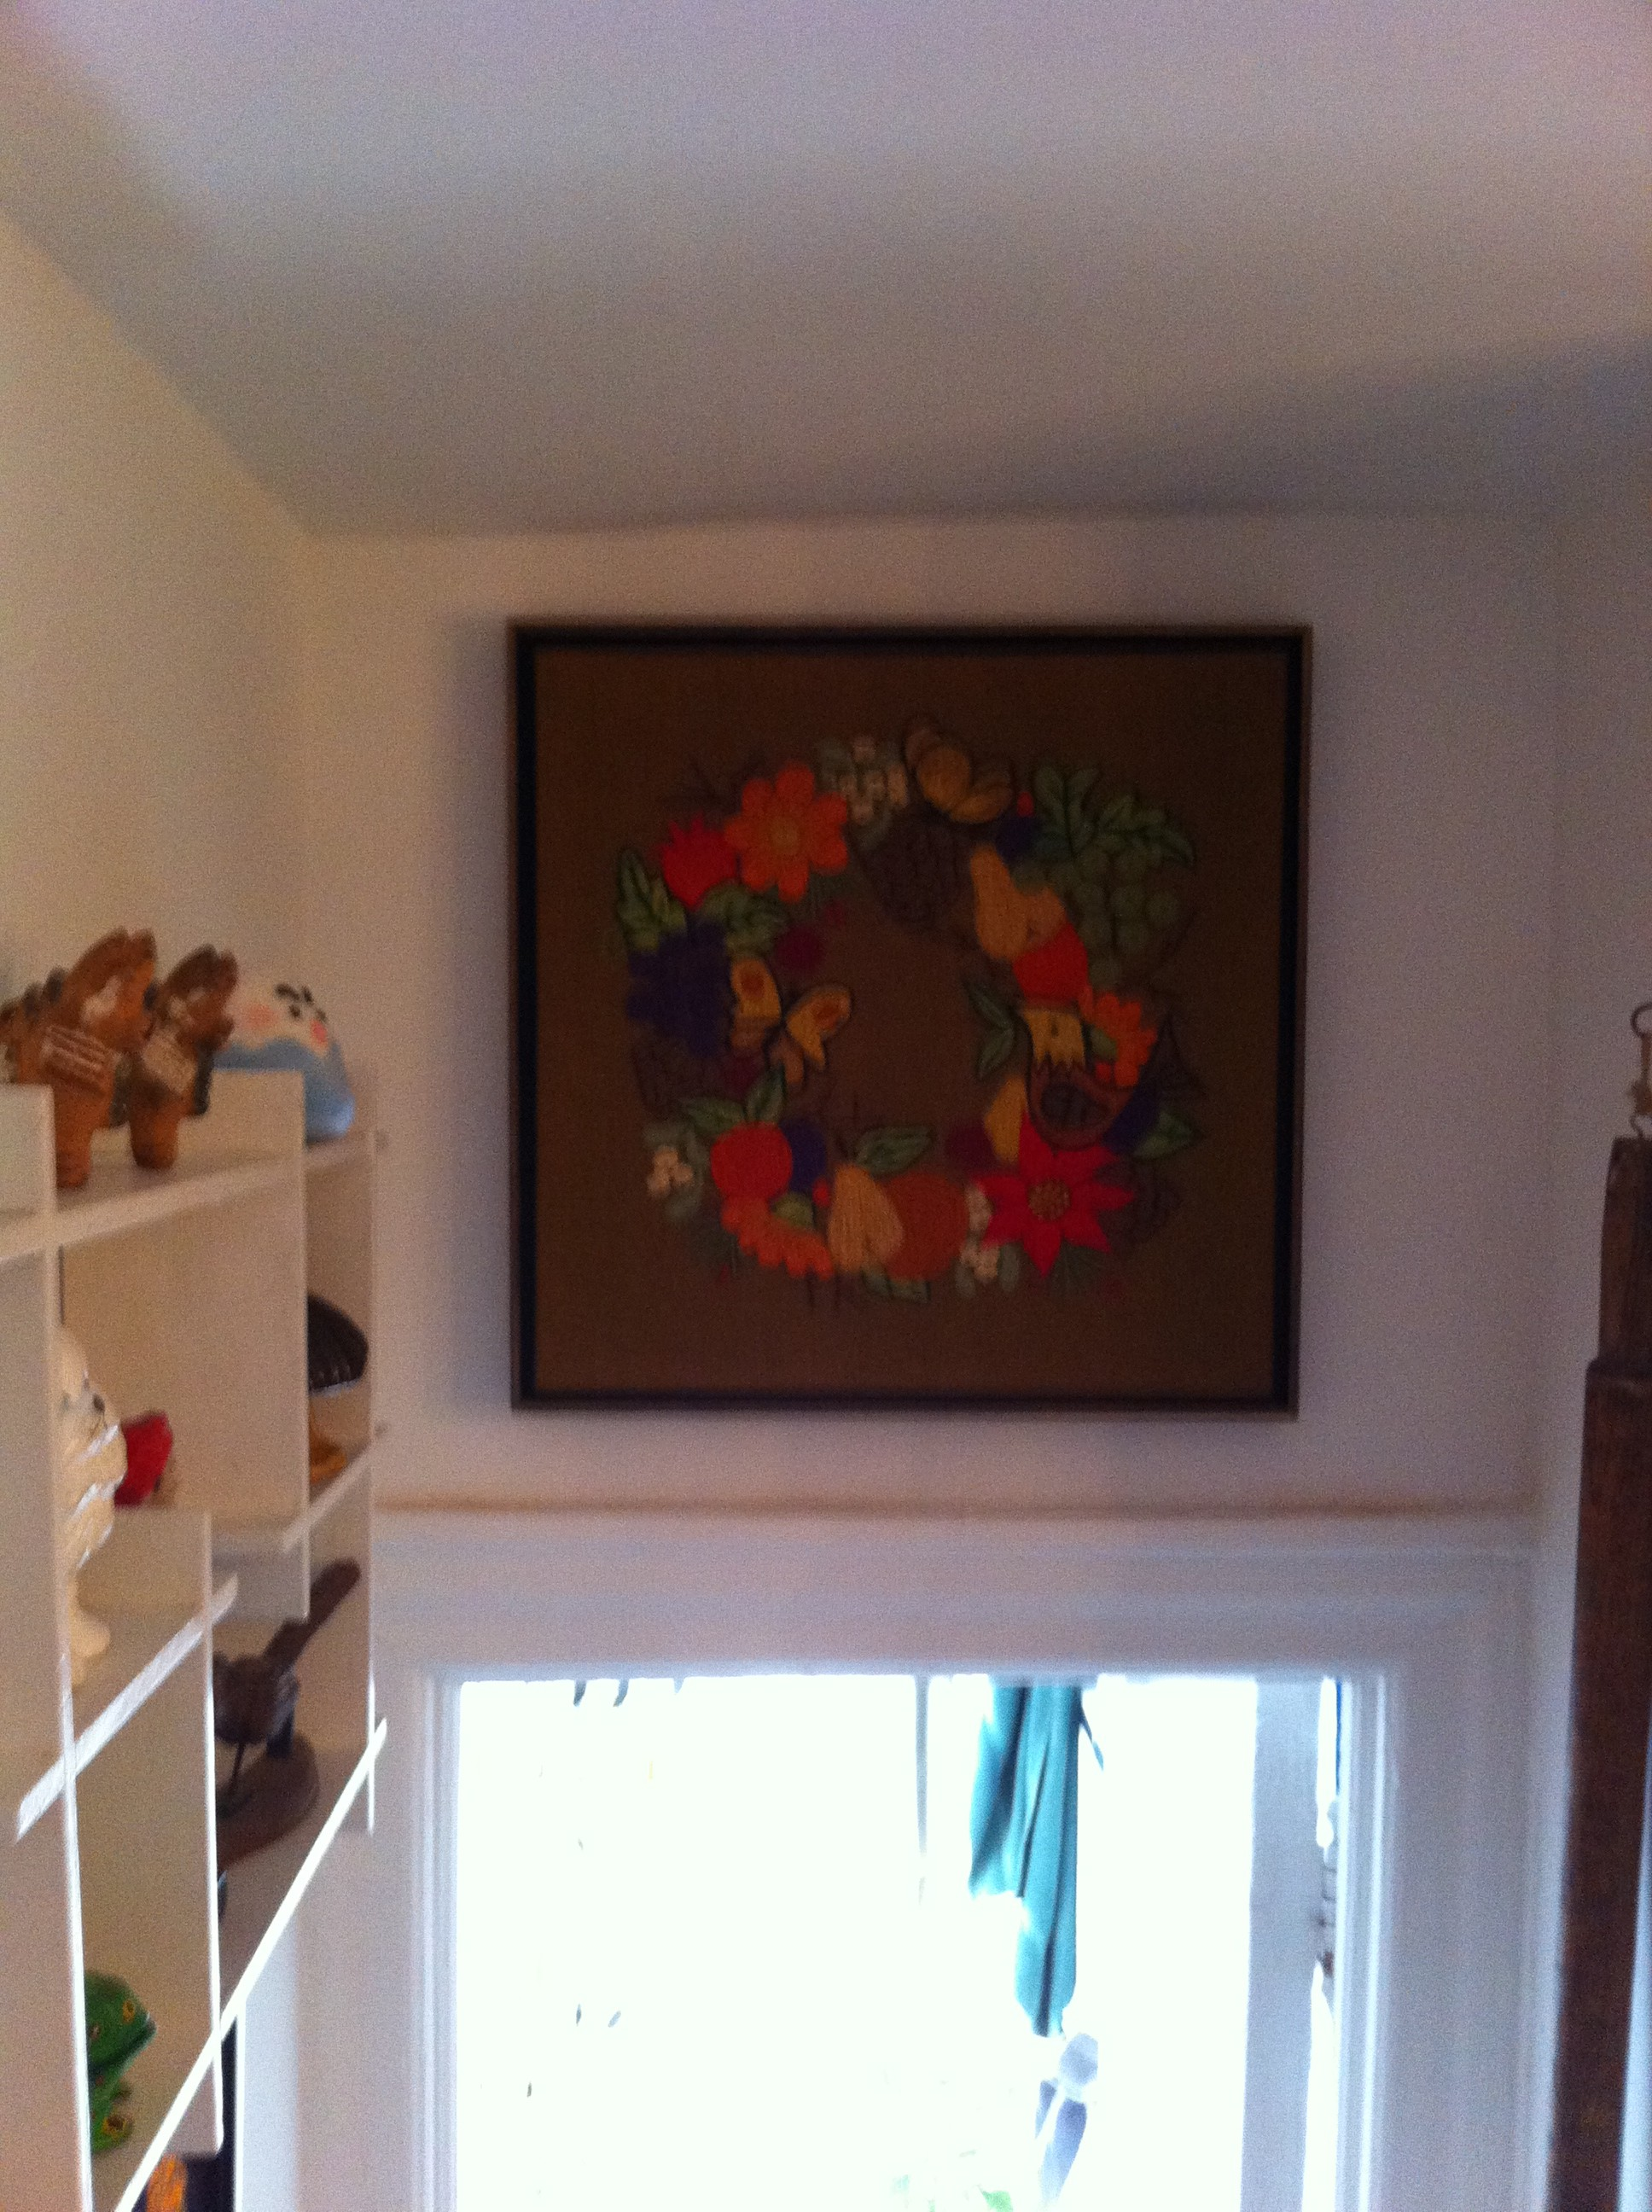 A pic of another yarn artwork collected by PJ Mehaffey